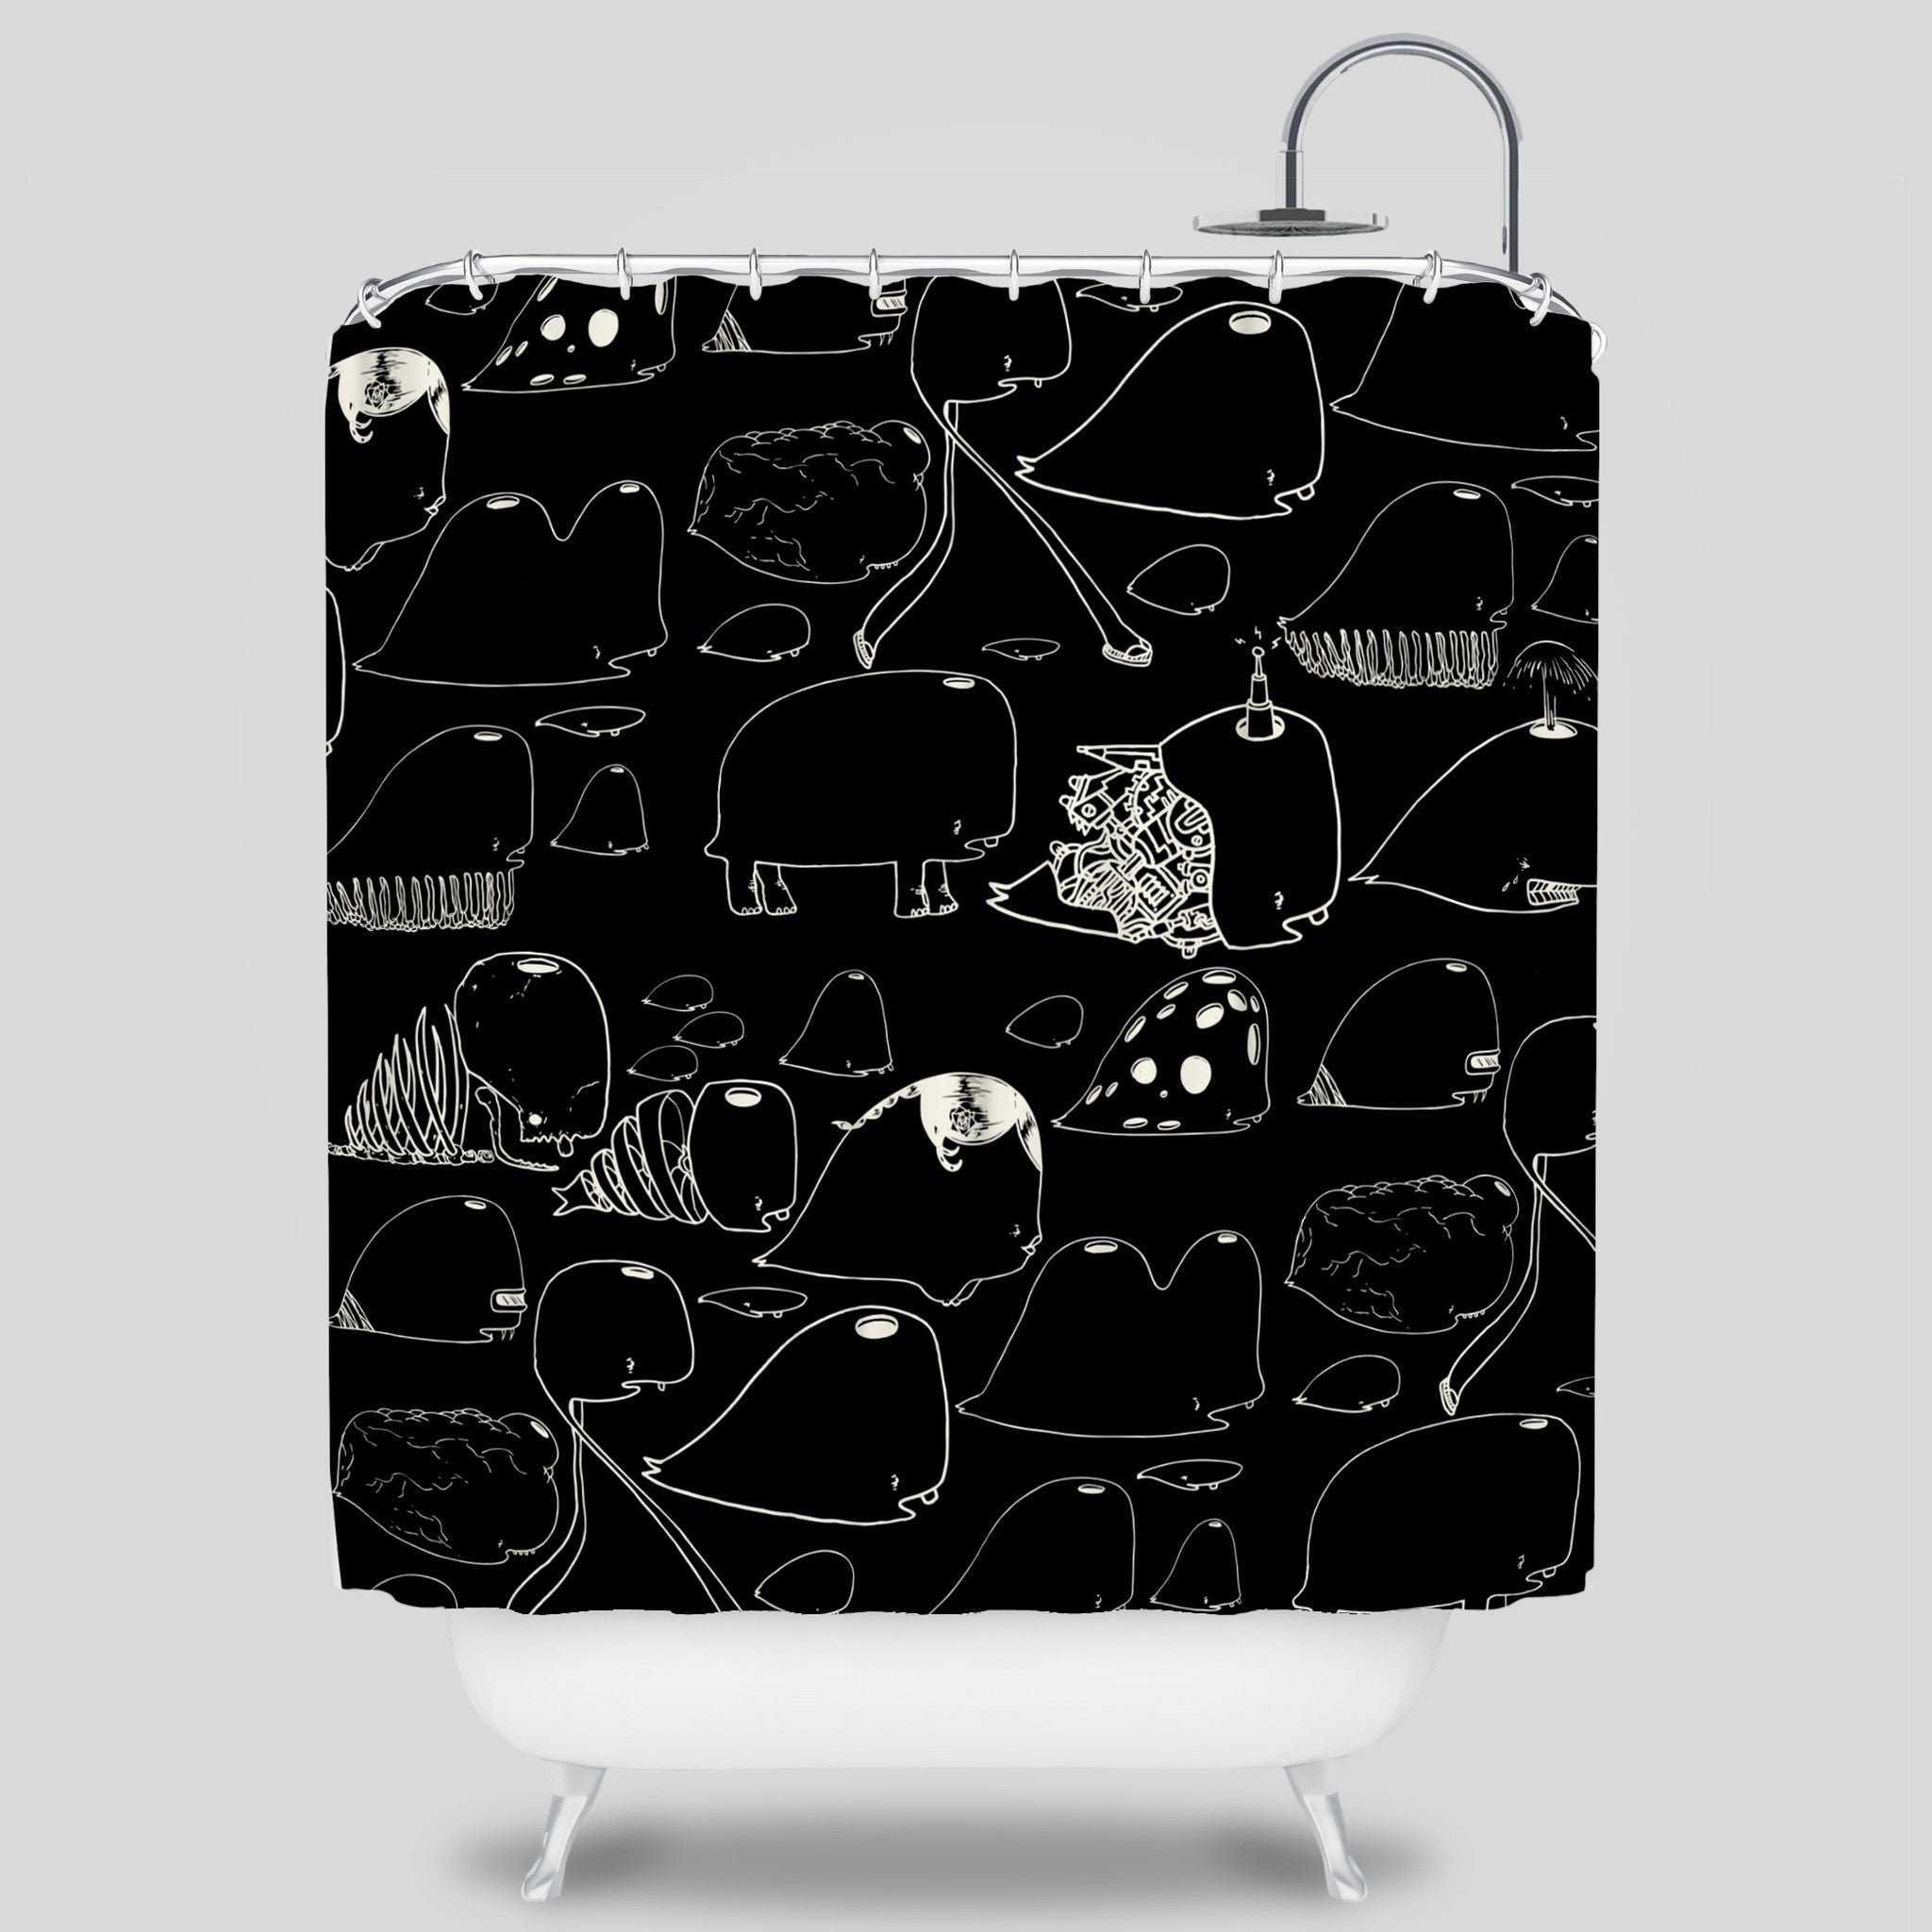 Choe Whales Shower Curtain